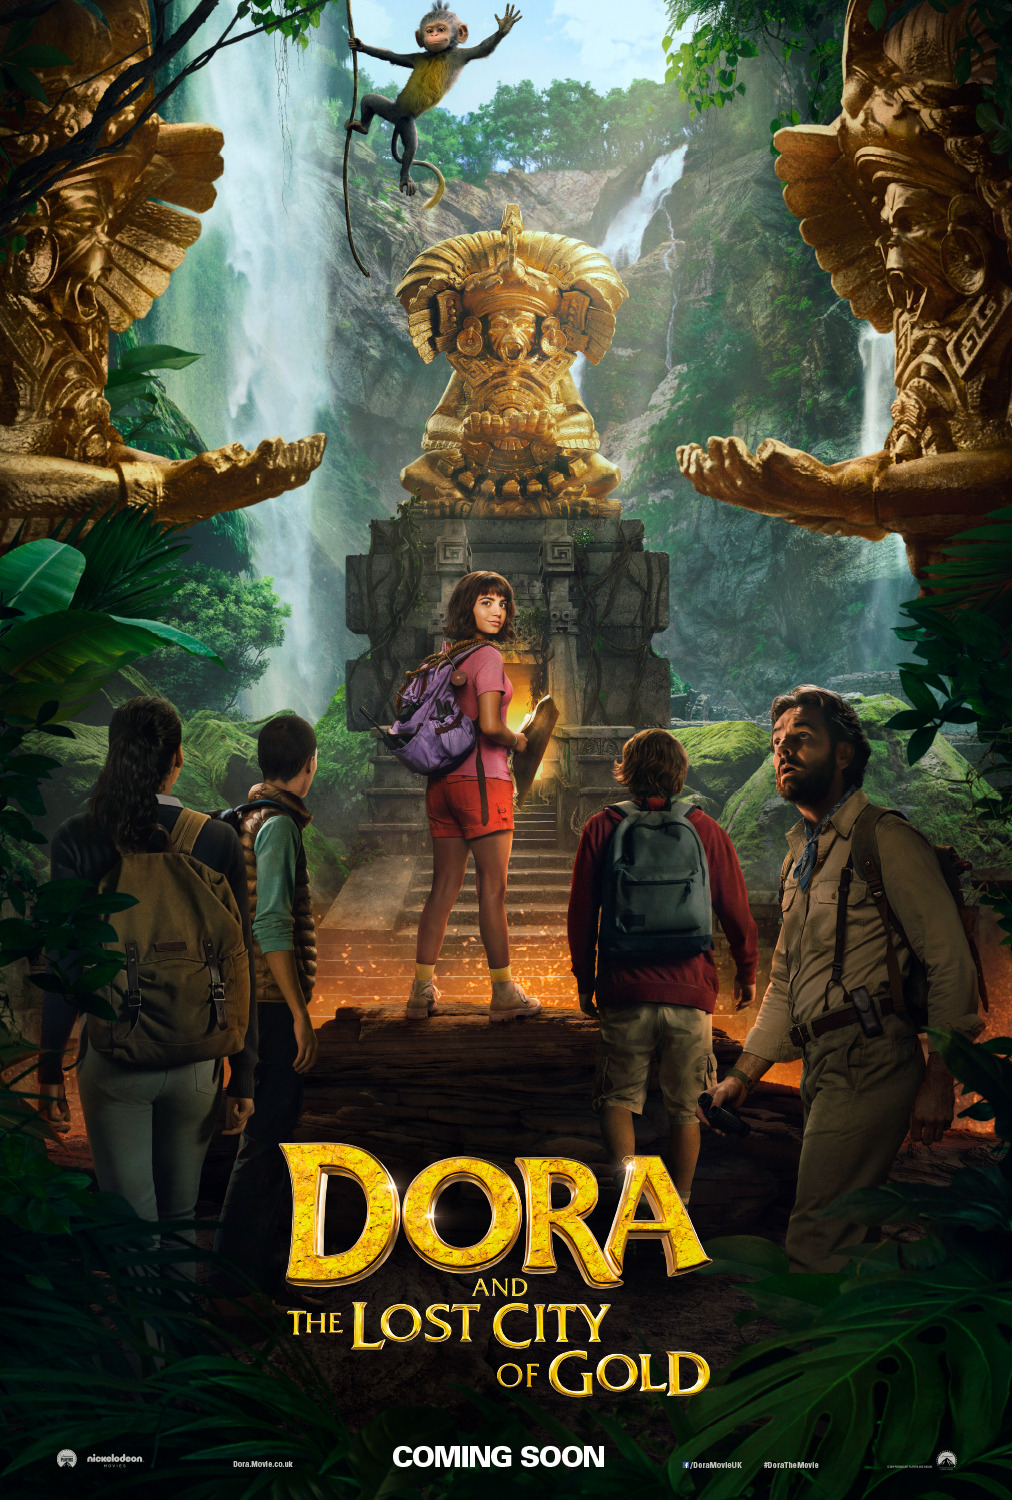 dora_and_the_lost_city_of_gold_p2.png